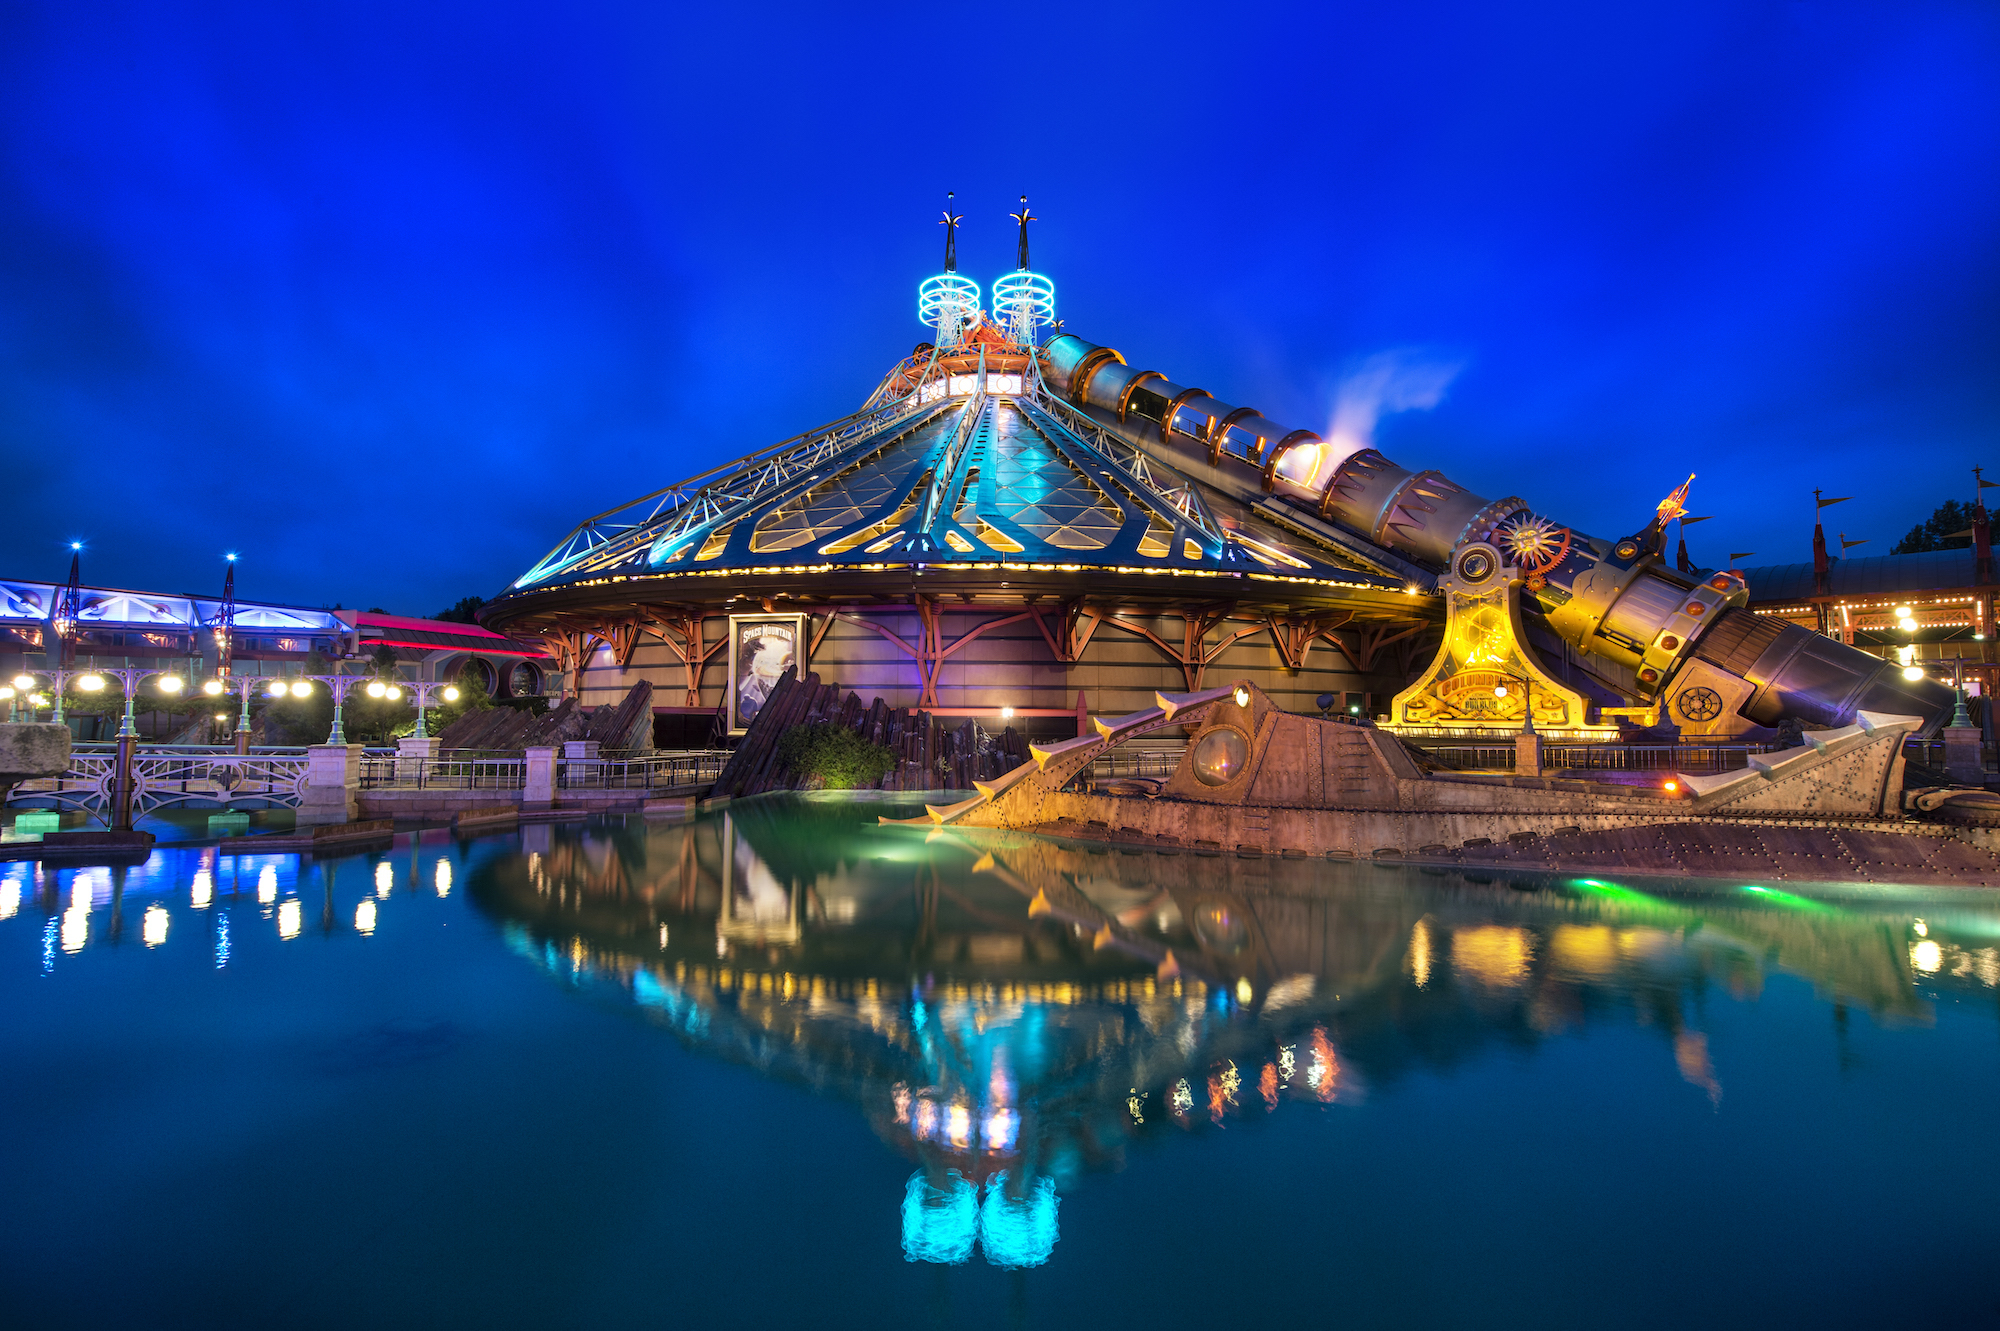 Lo Space Mountain